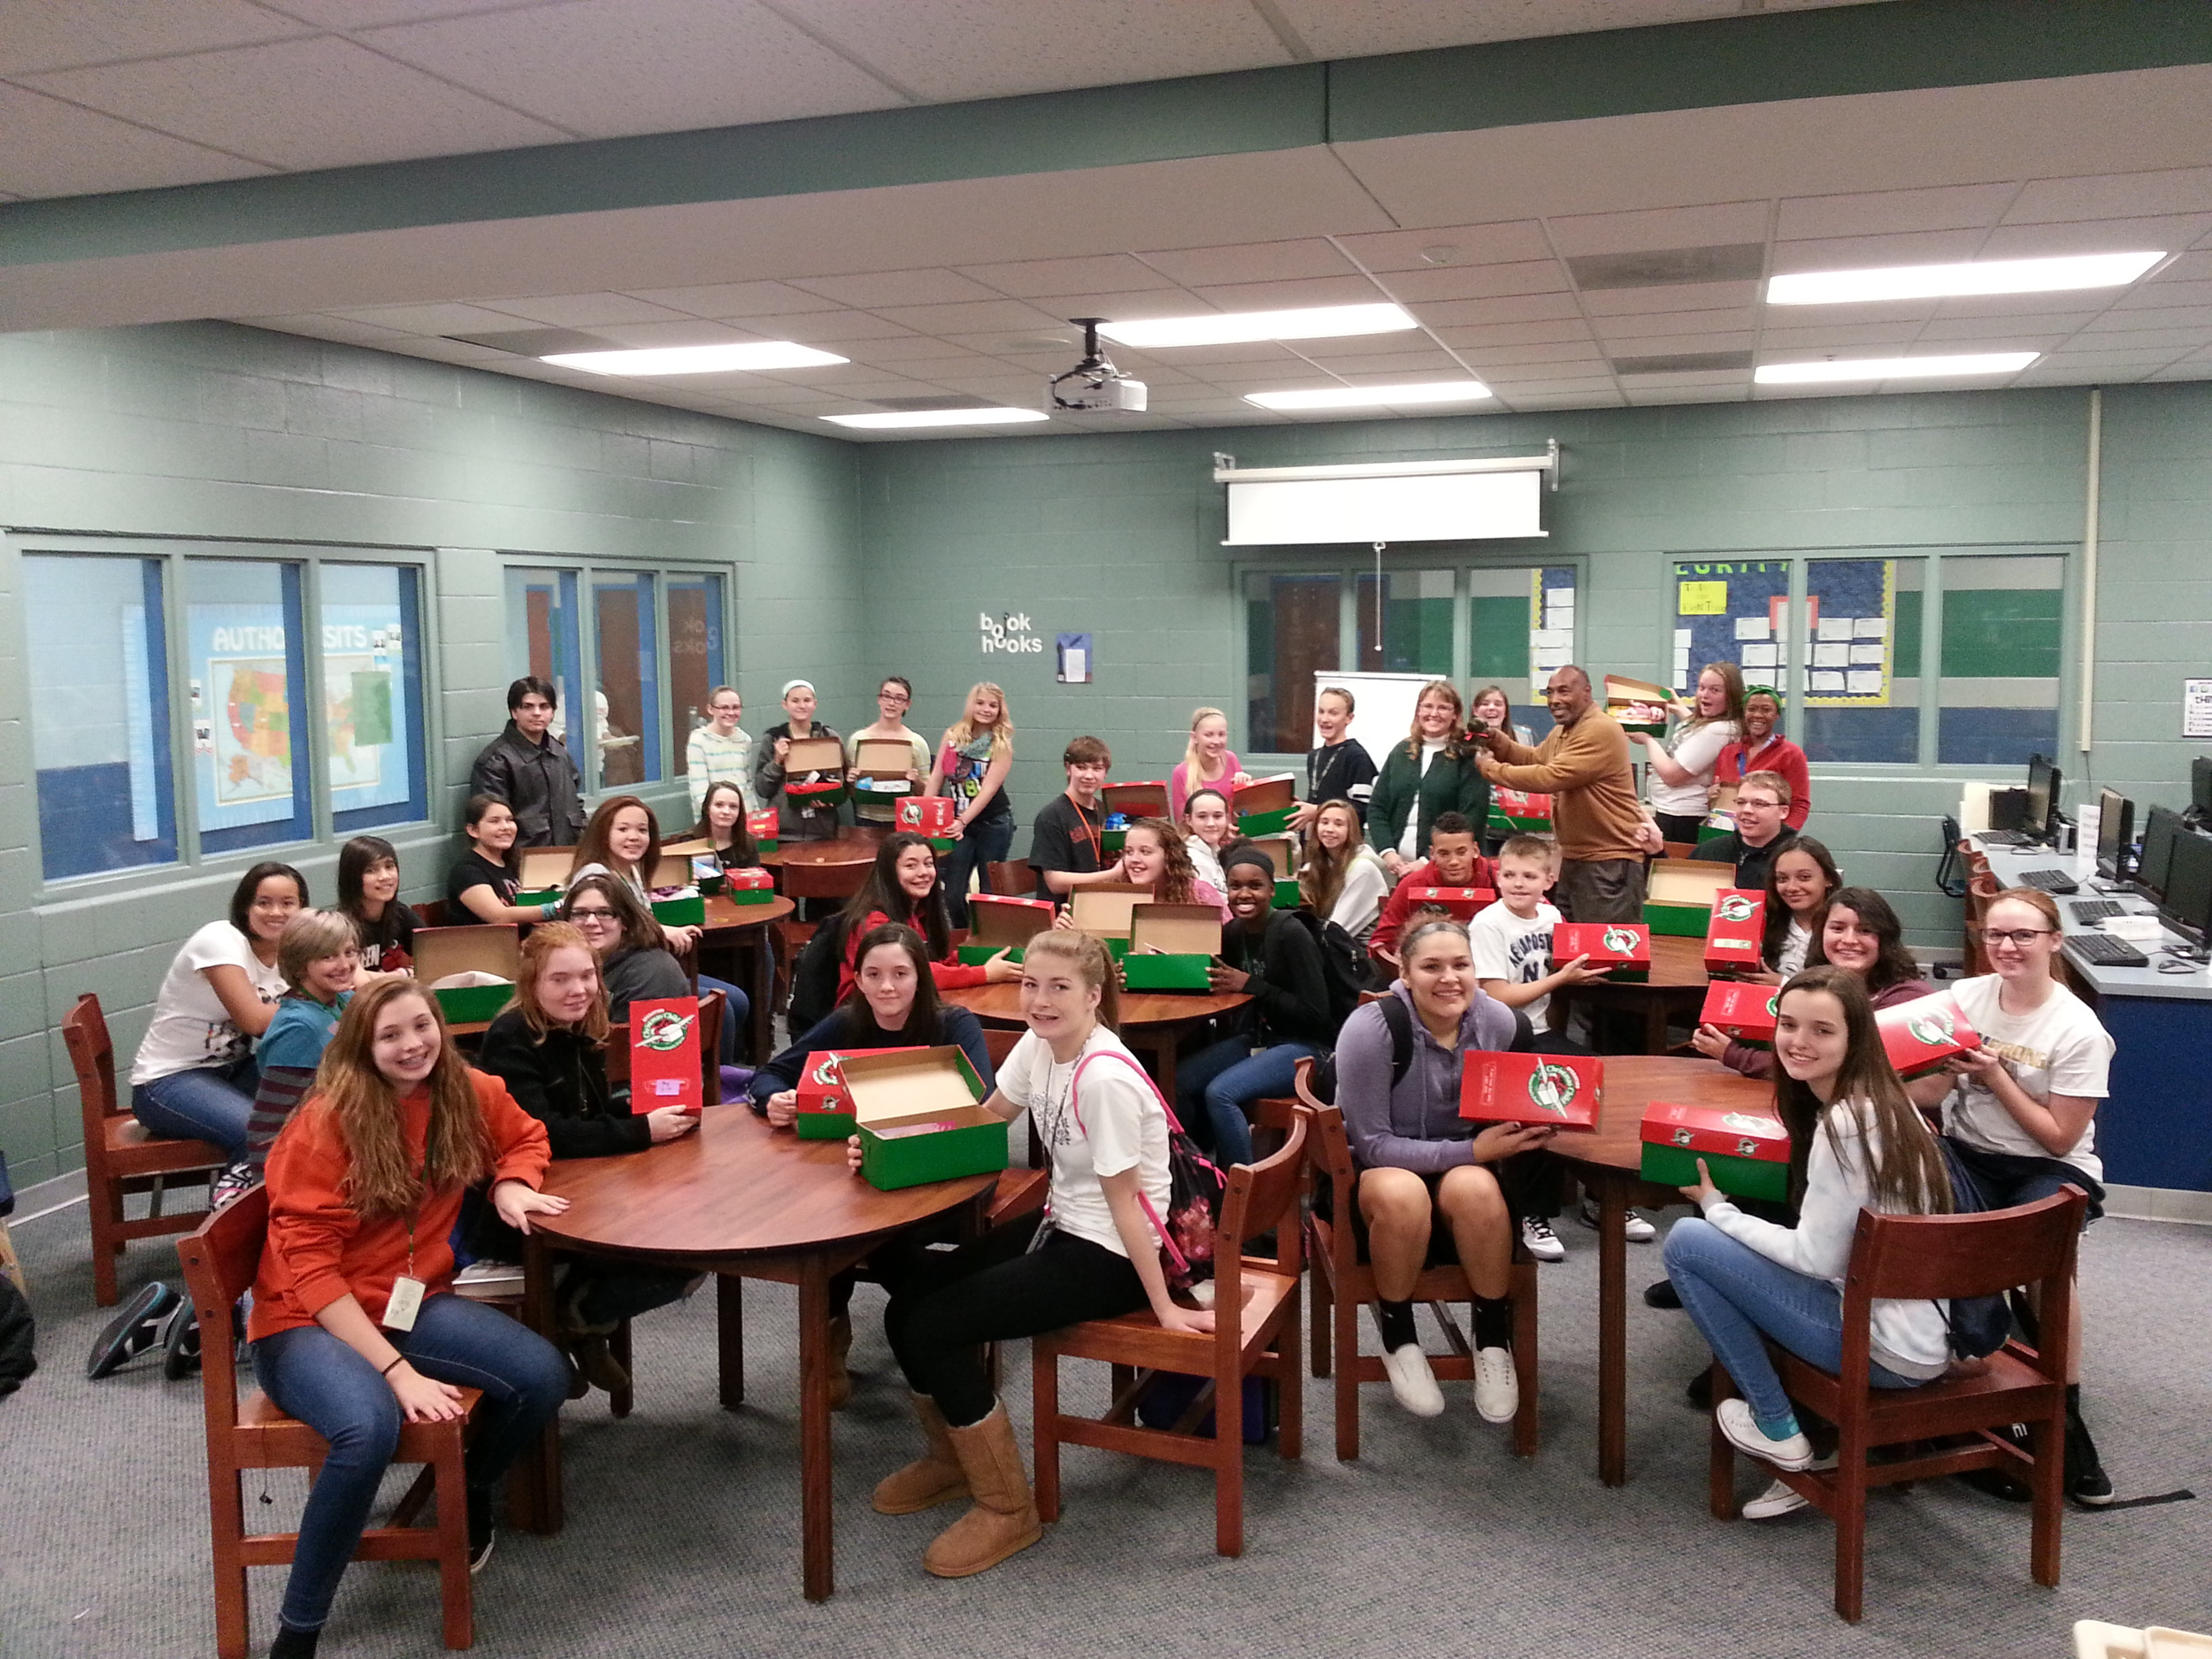 christmas around the world activities for middle school